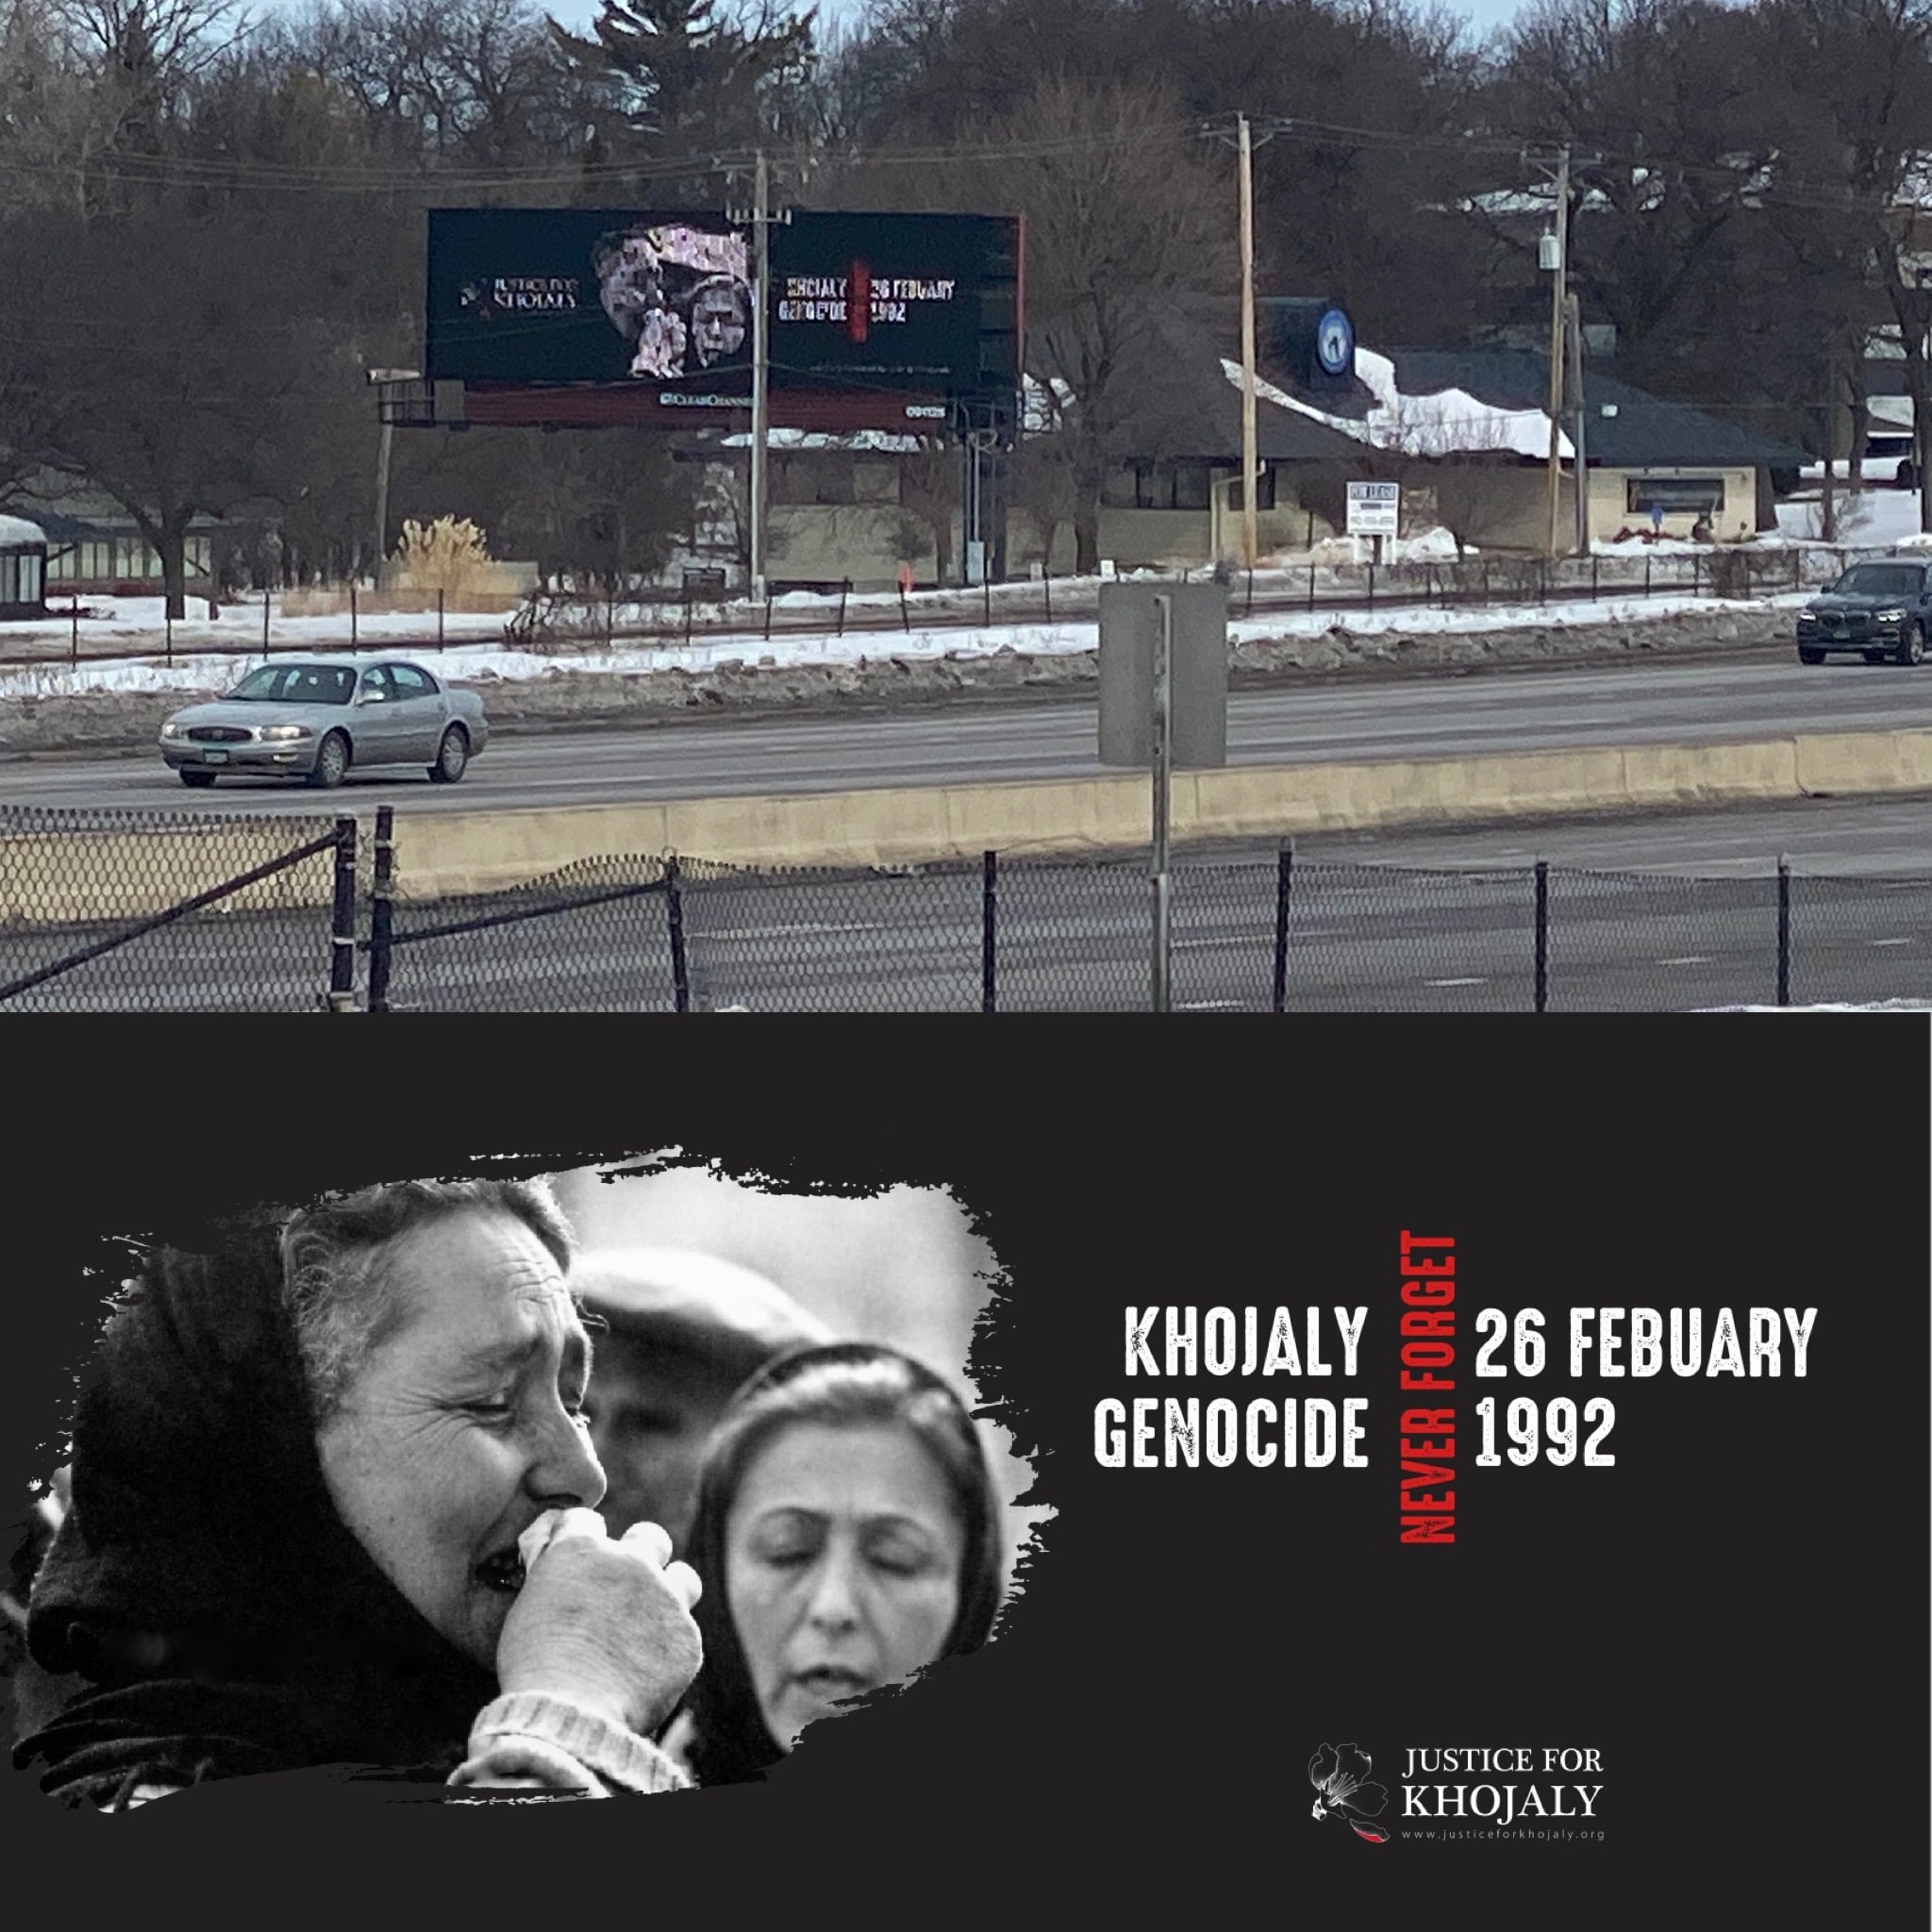 Khojaly and the Politics of Naming